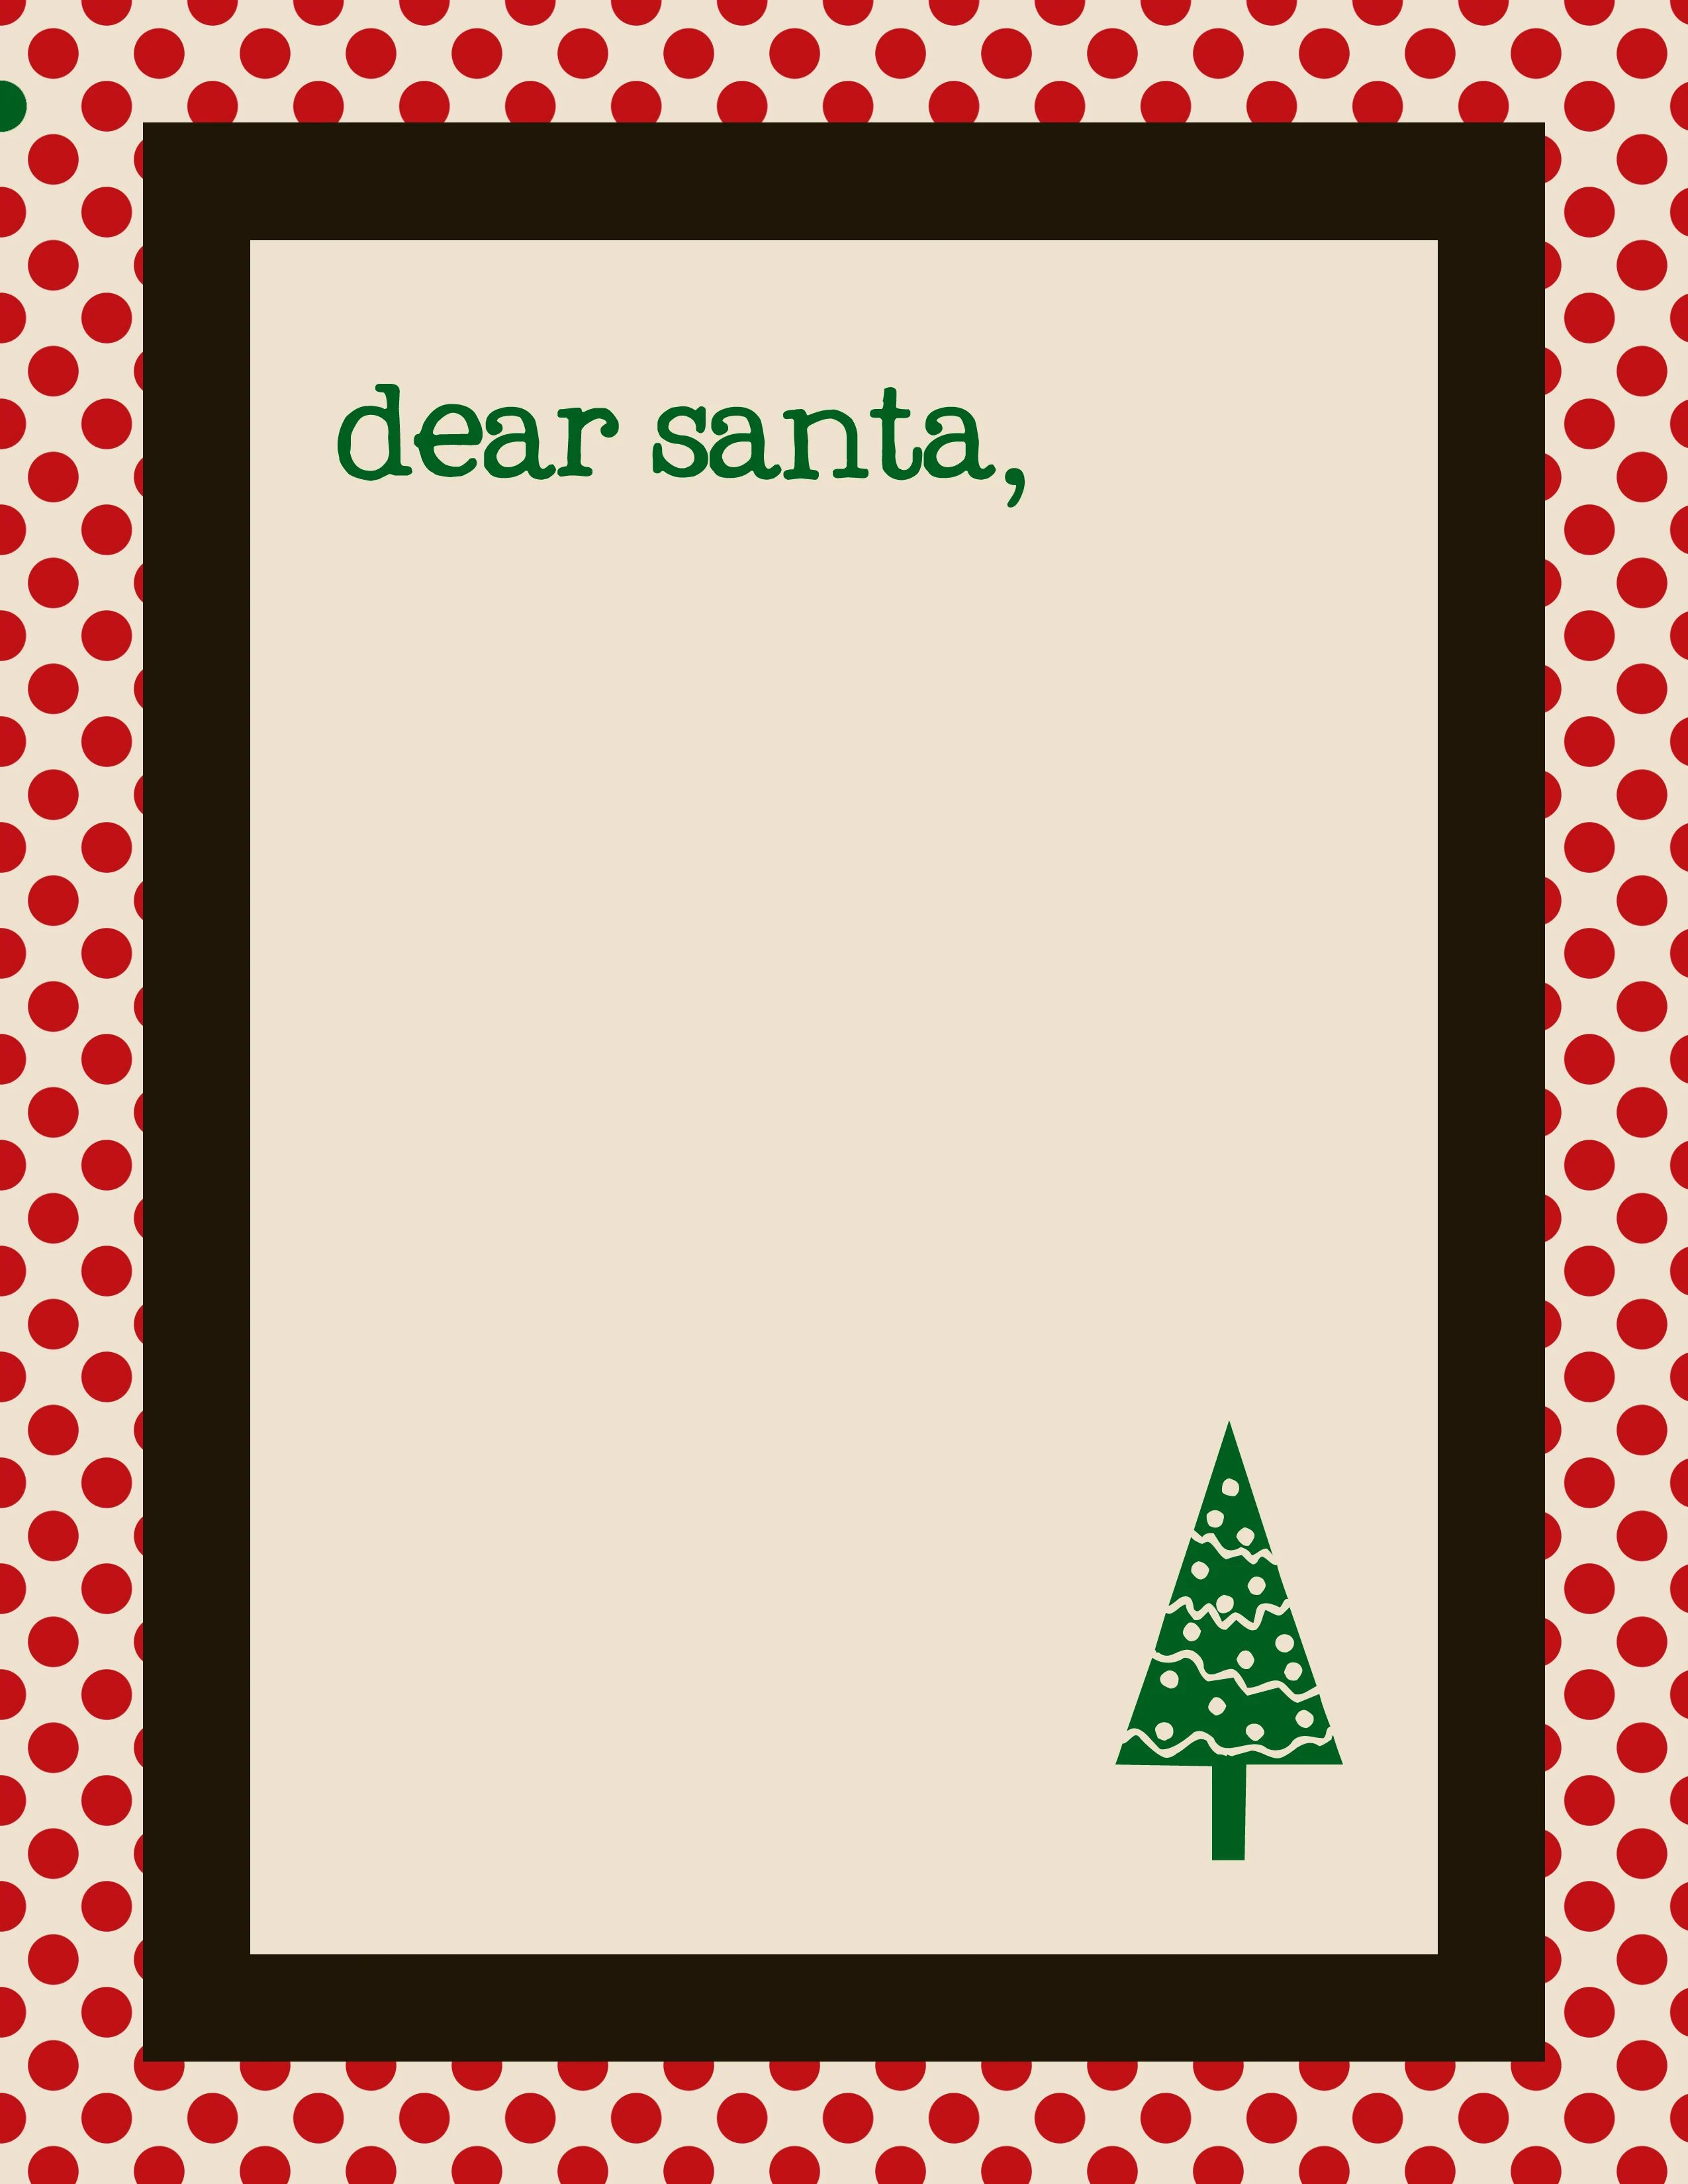 99 printable letter from santa word doc with printable letter template from santa letter templatescom letter to santa word document sample christmas card greetings free pronofoot35fo Images